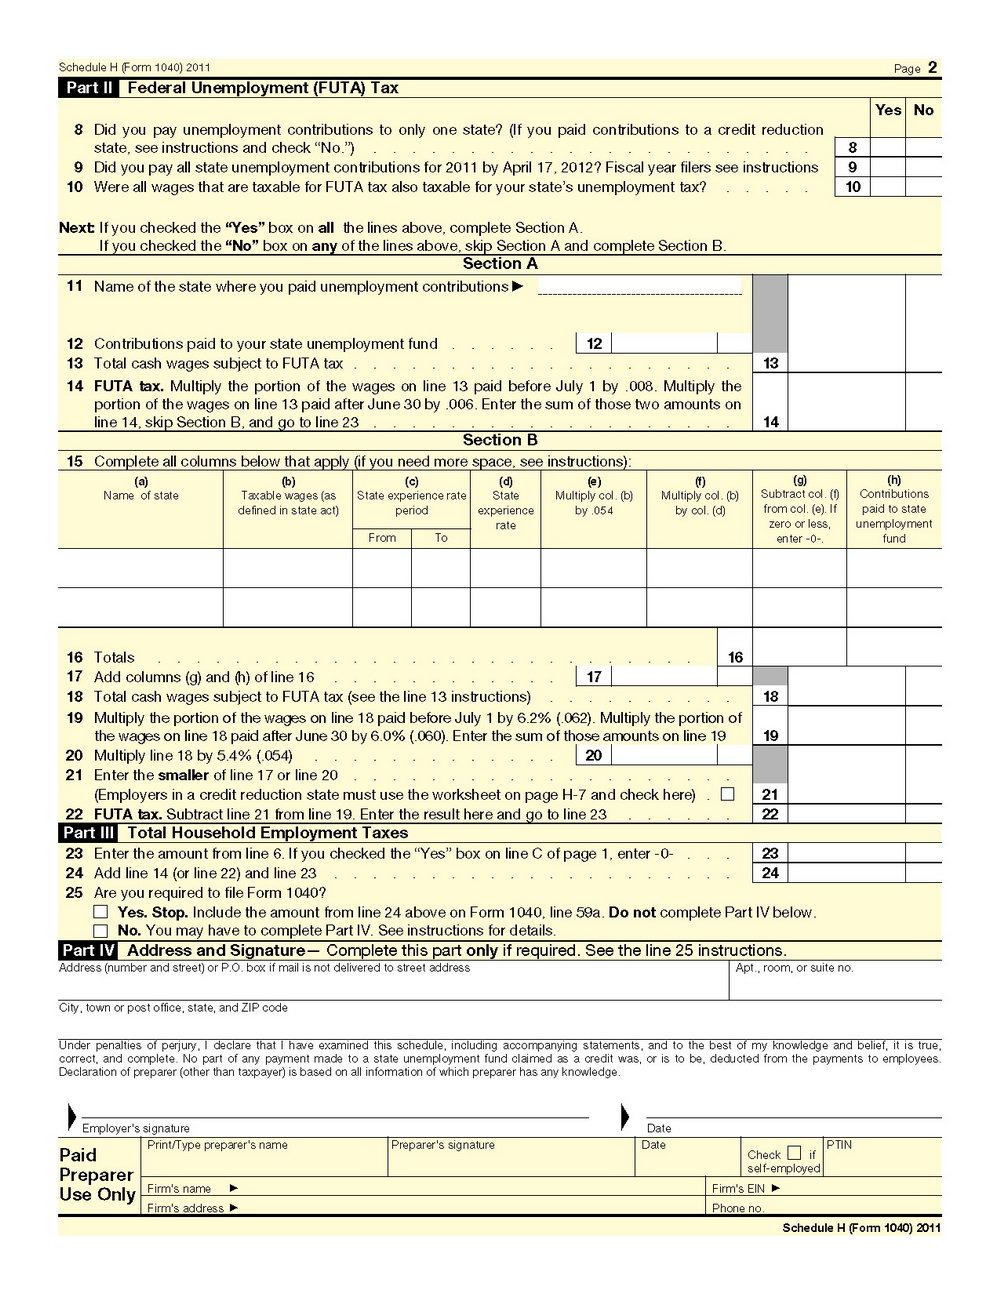 2013 Form 1040a Instructions